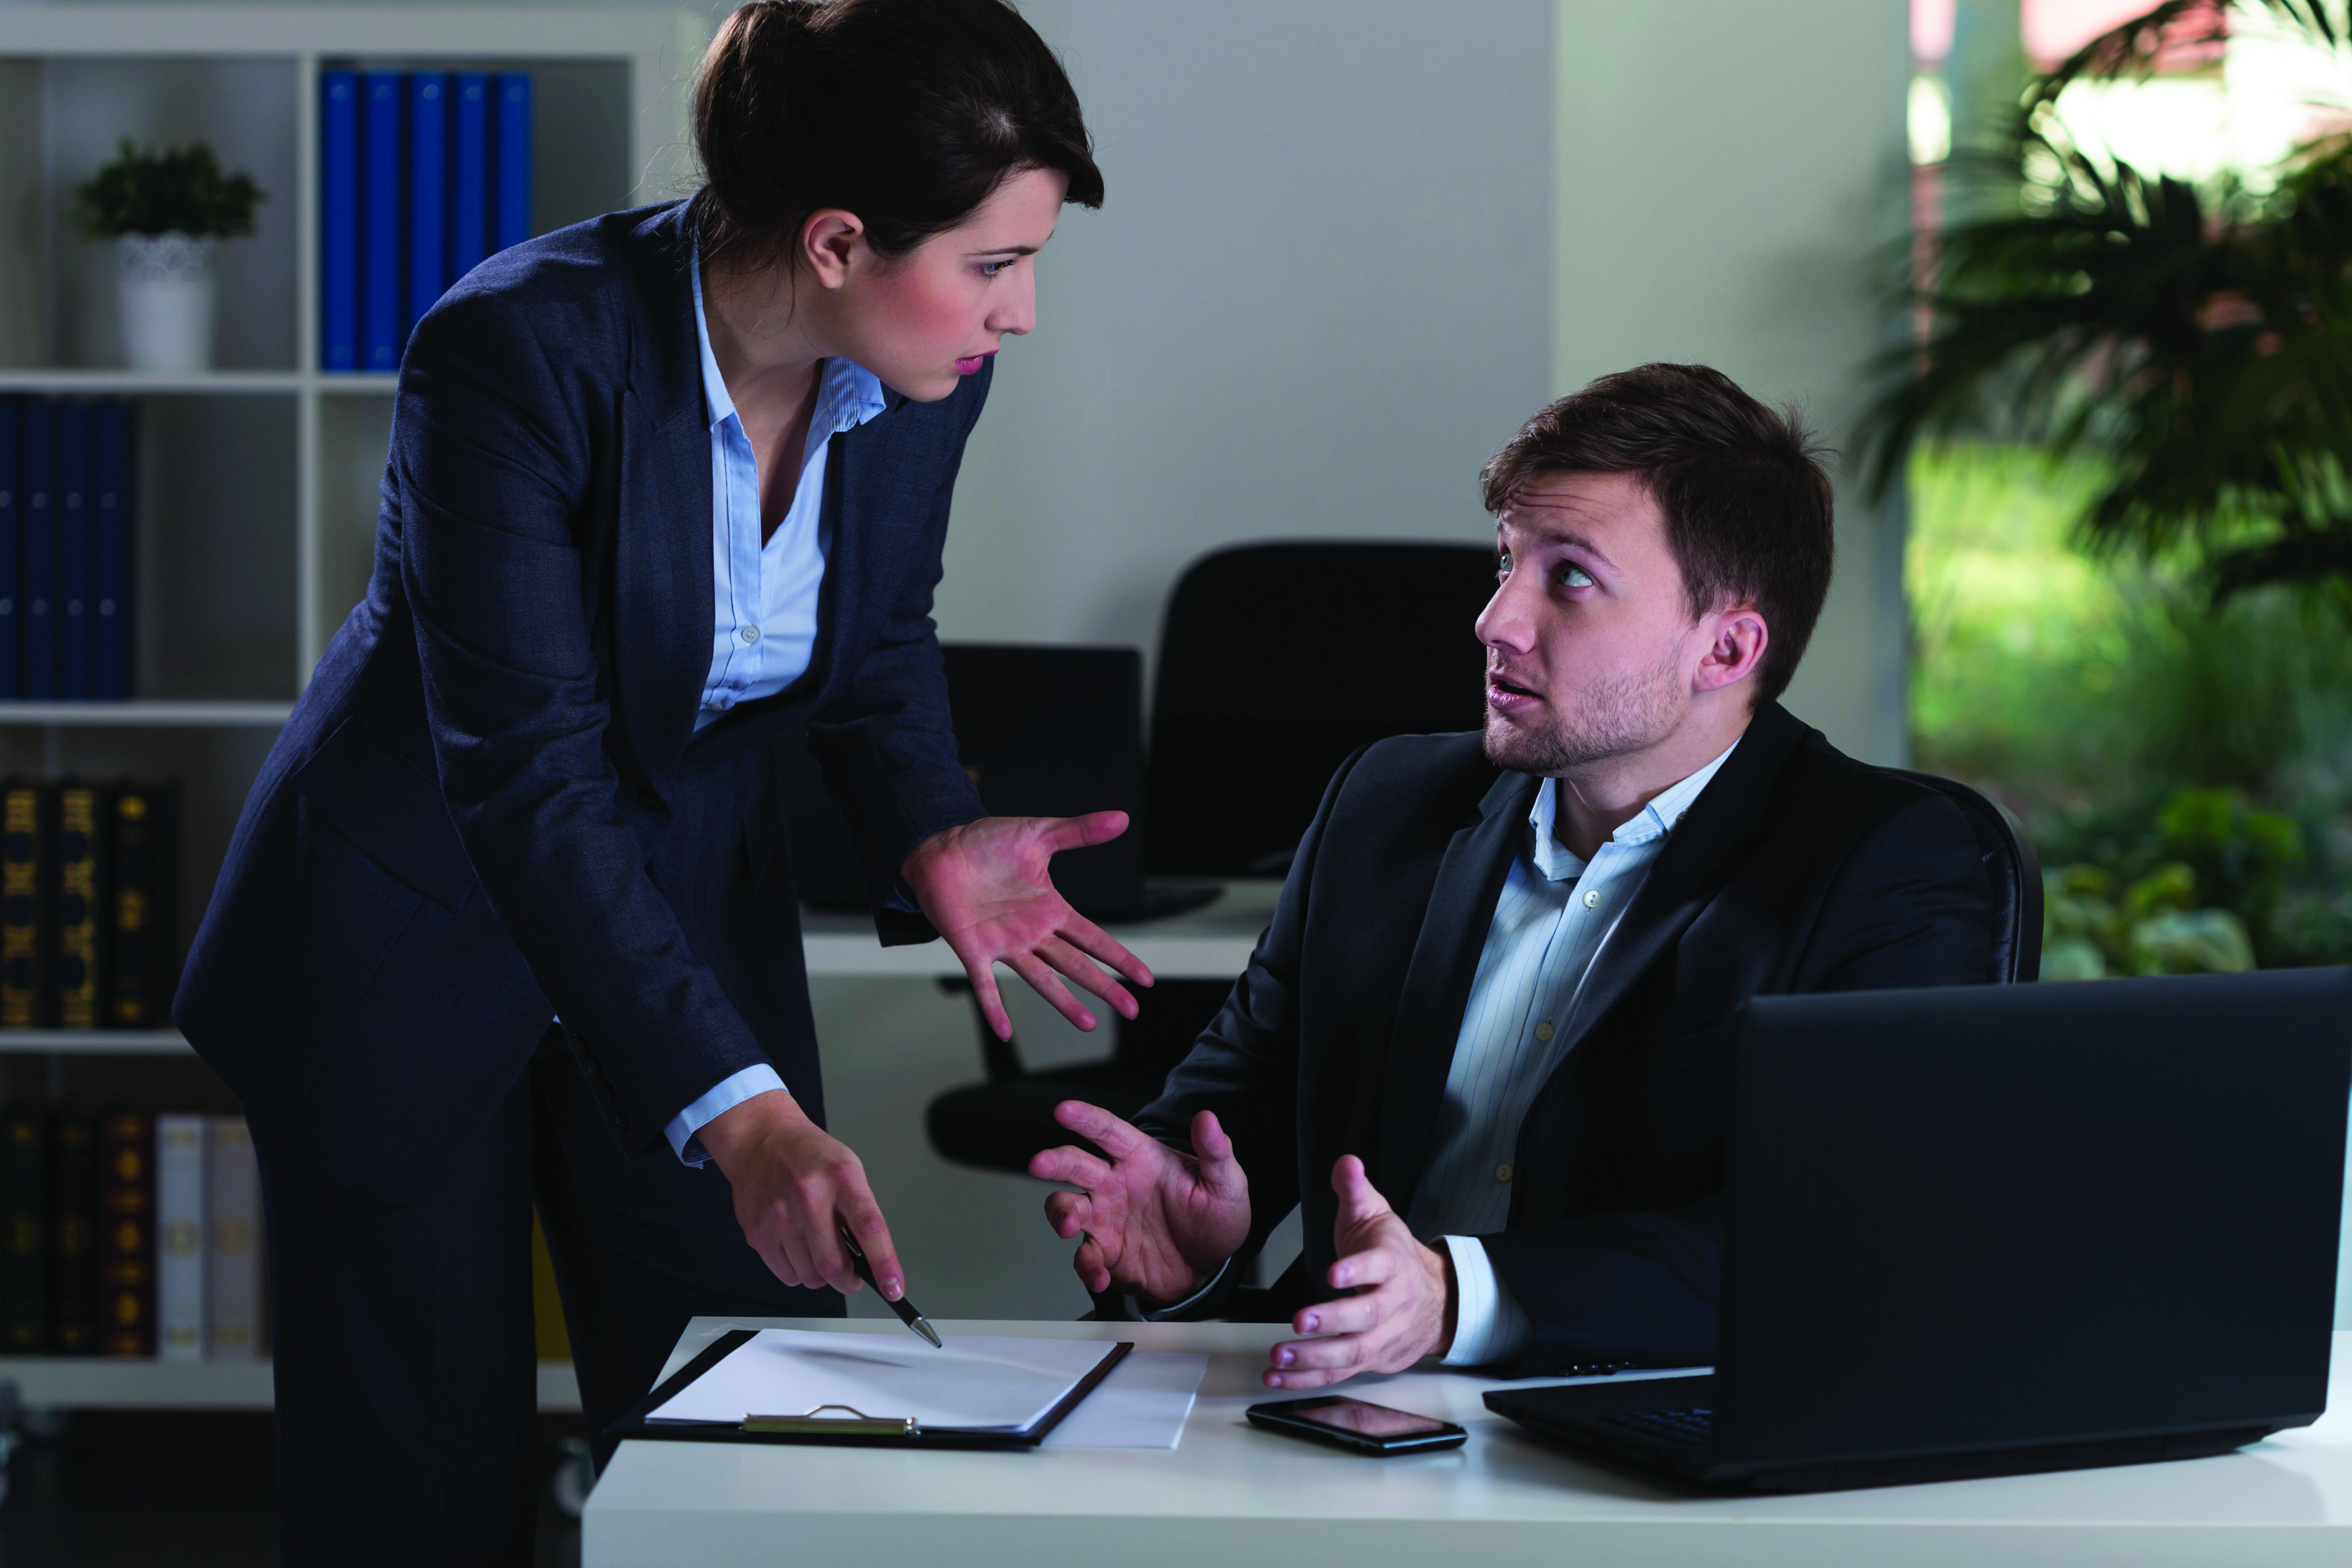 how to resolve conflict at work as a manager